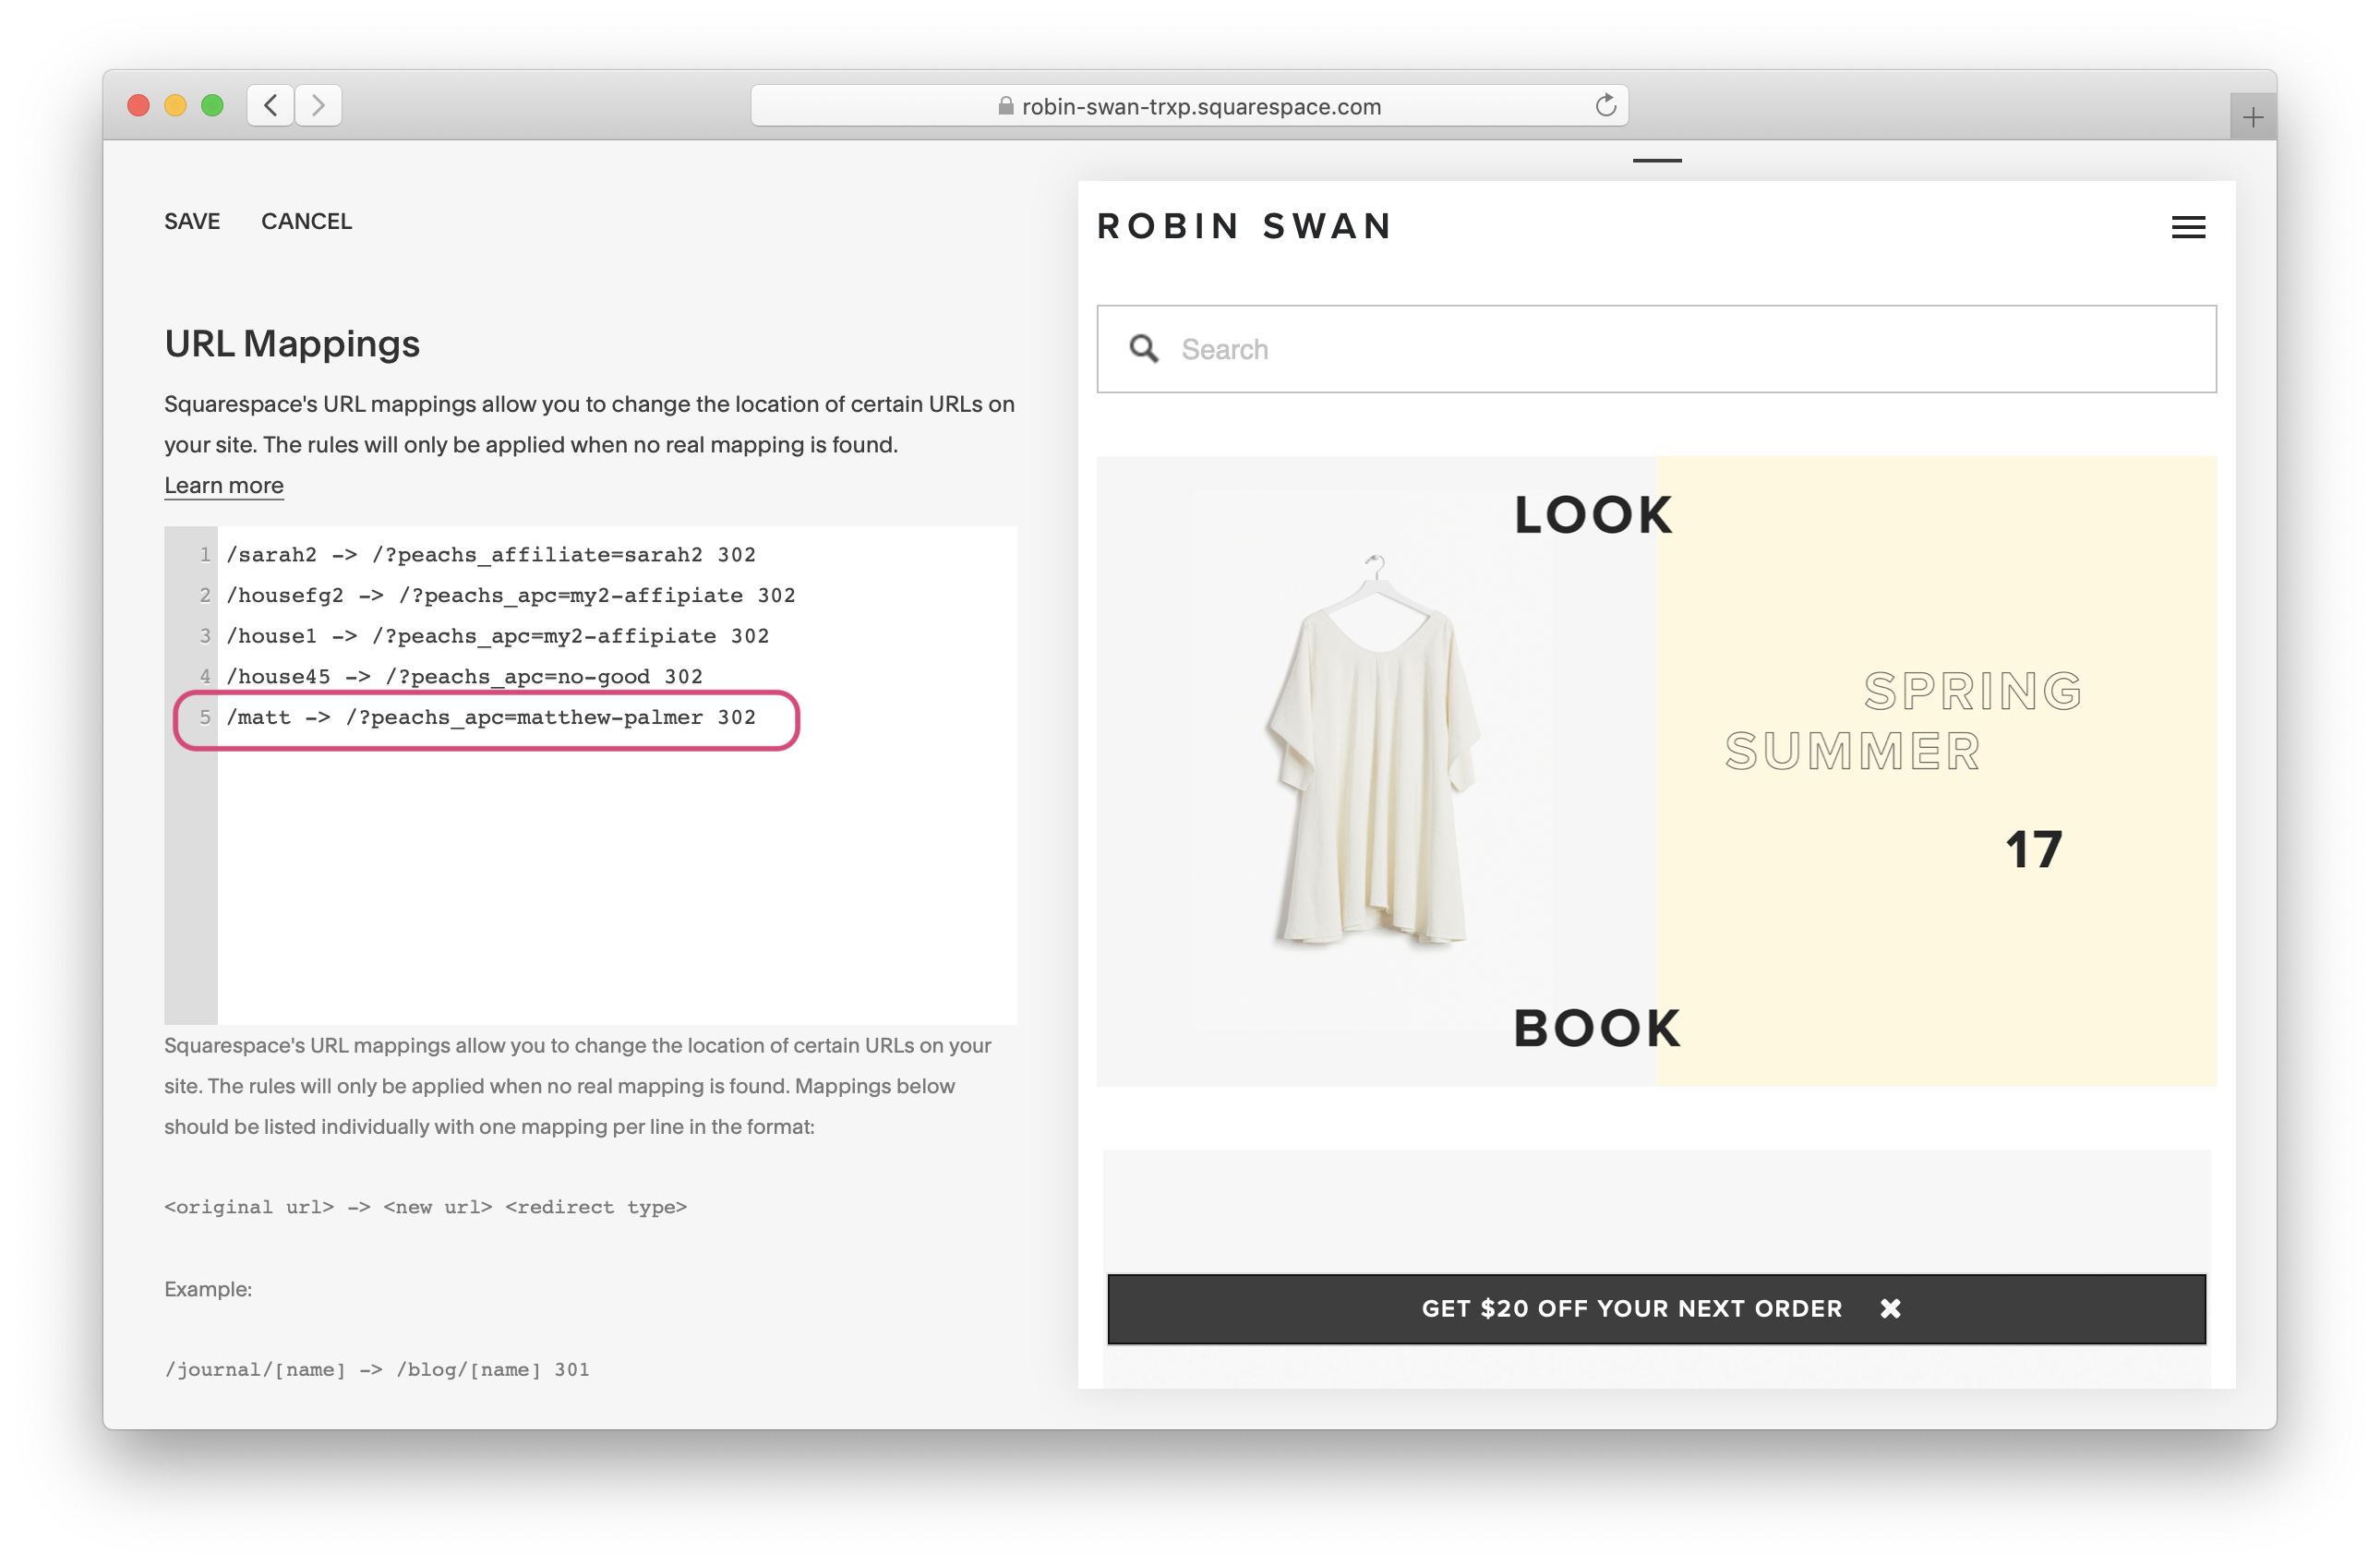 Squarespace URL mapping settings